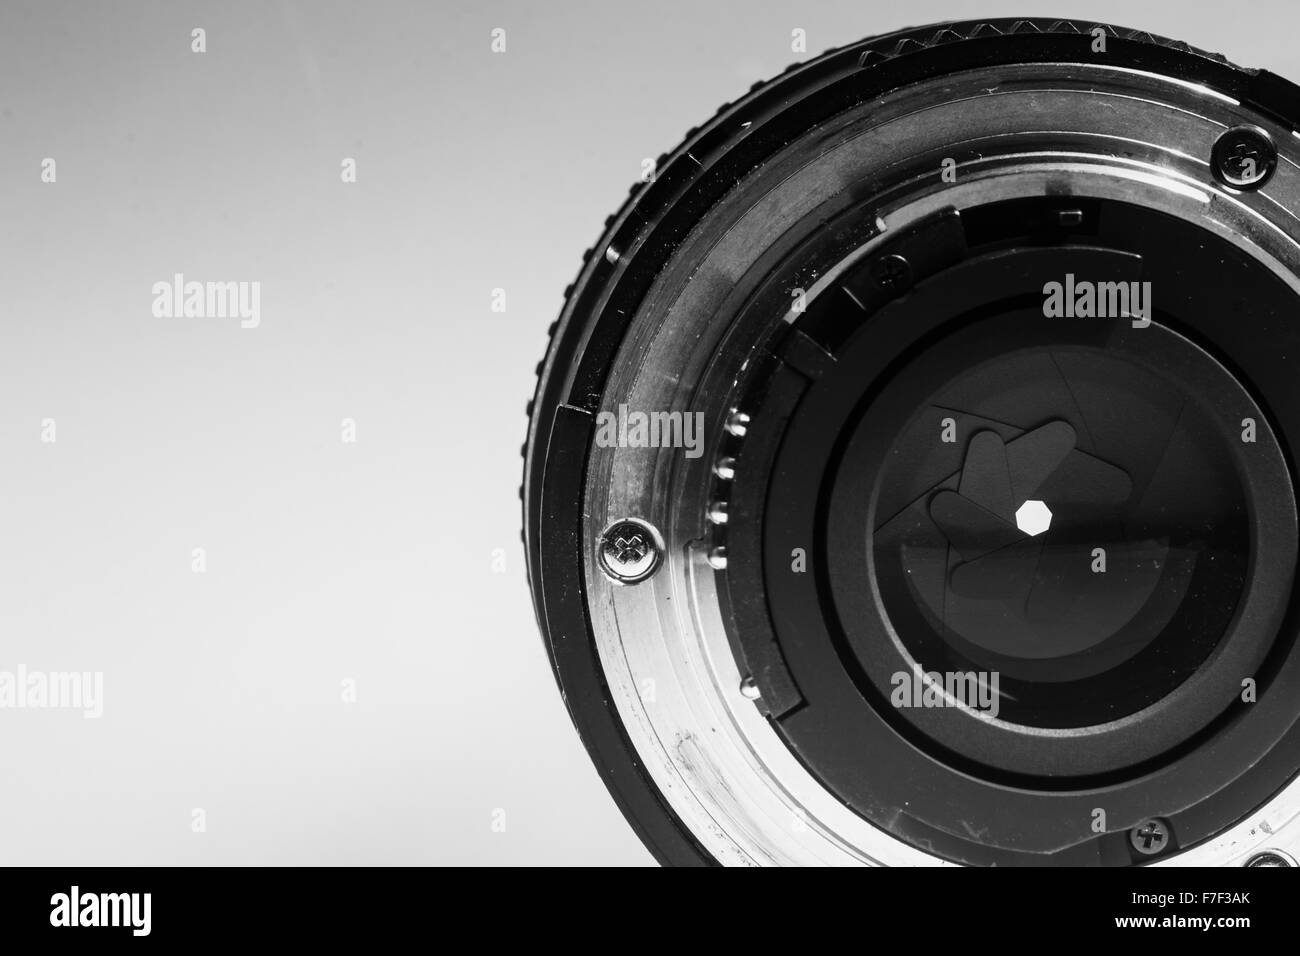 Close-up image of the rear end of a camera lens showing diaphragms and aperture rings in monochrome black and white - Stock Image